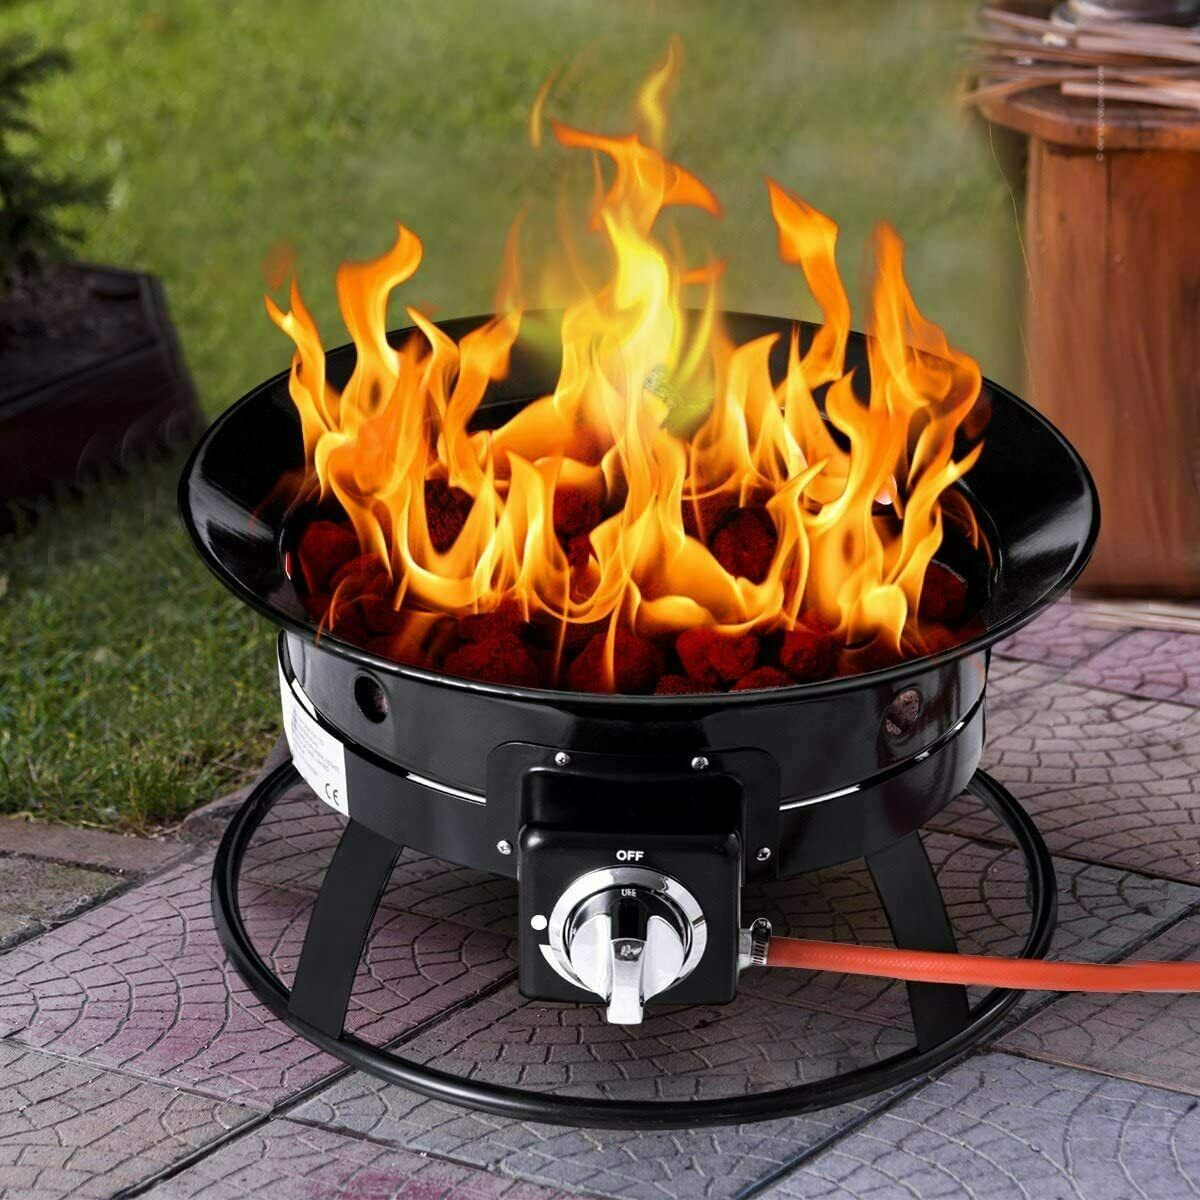 Portable Outdoor Gas Fire Pit with Lava Rocks, Gas regulator, hose and cover